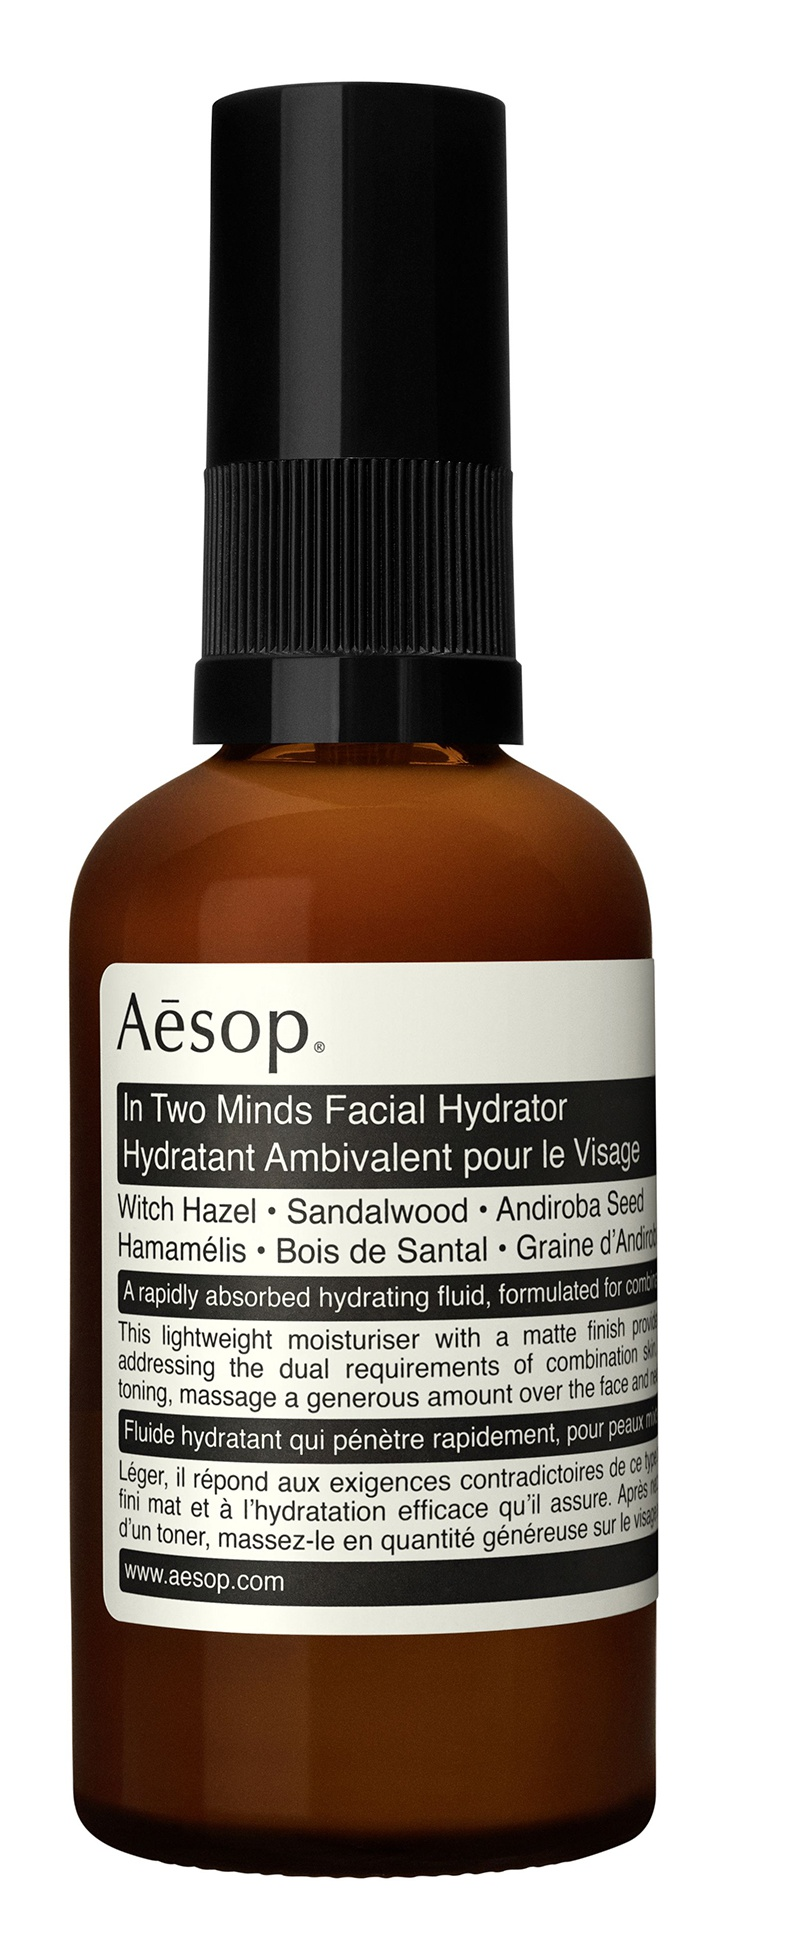 Aesop In Two Minds Facial Hydrator